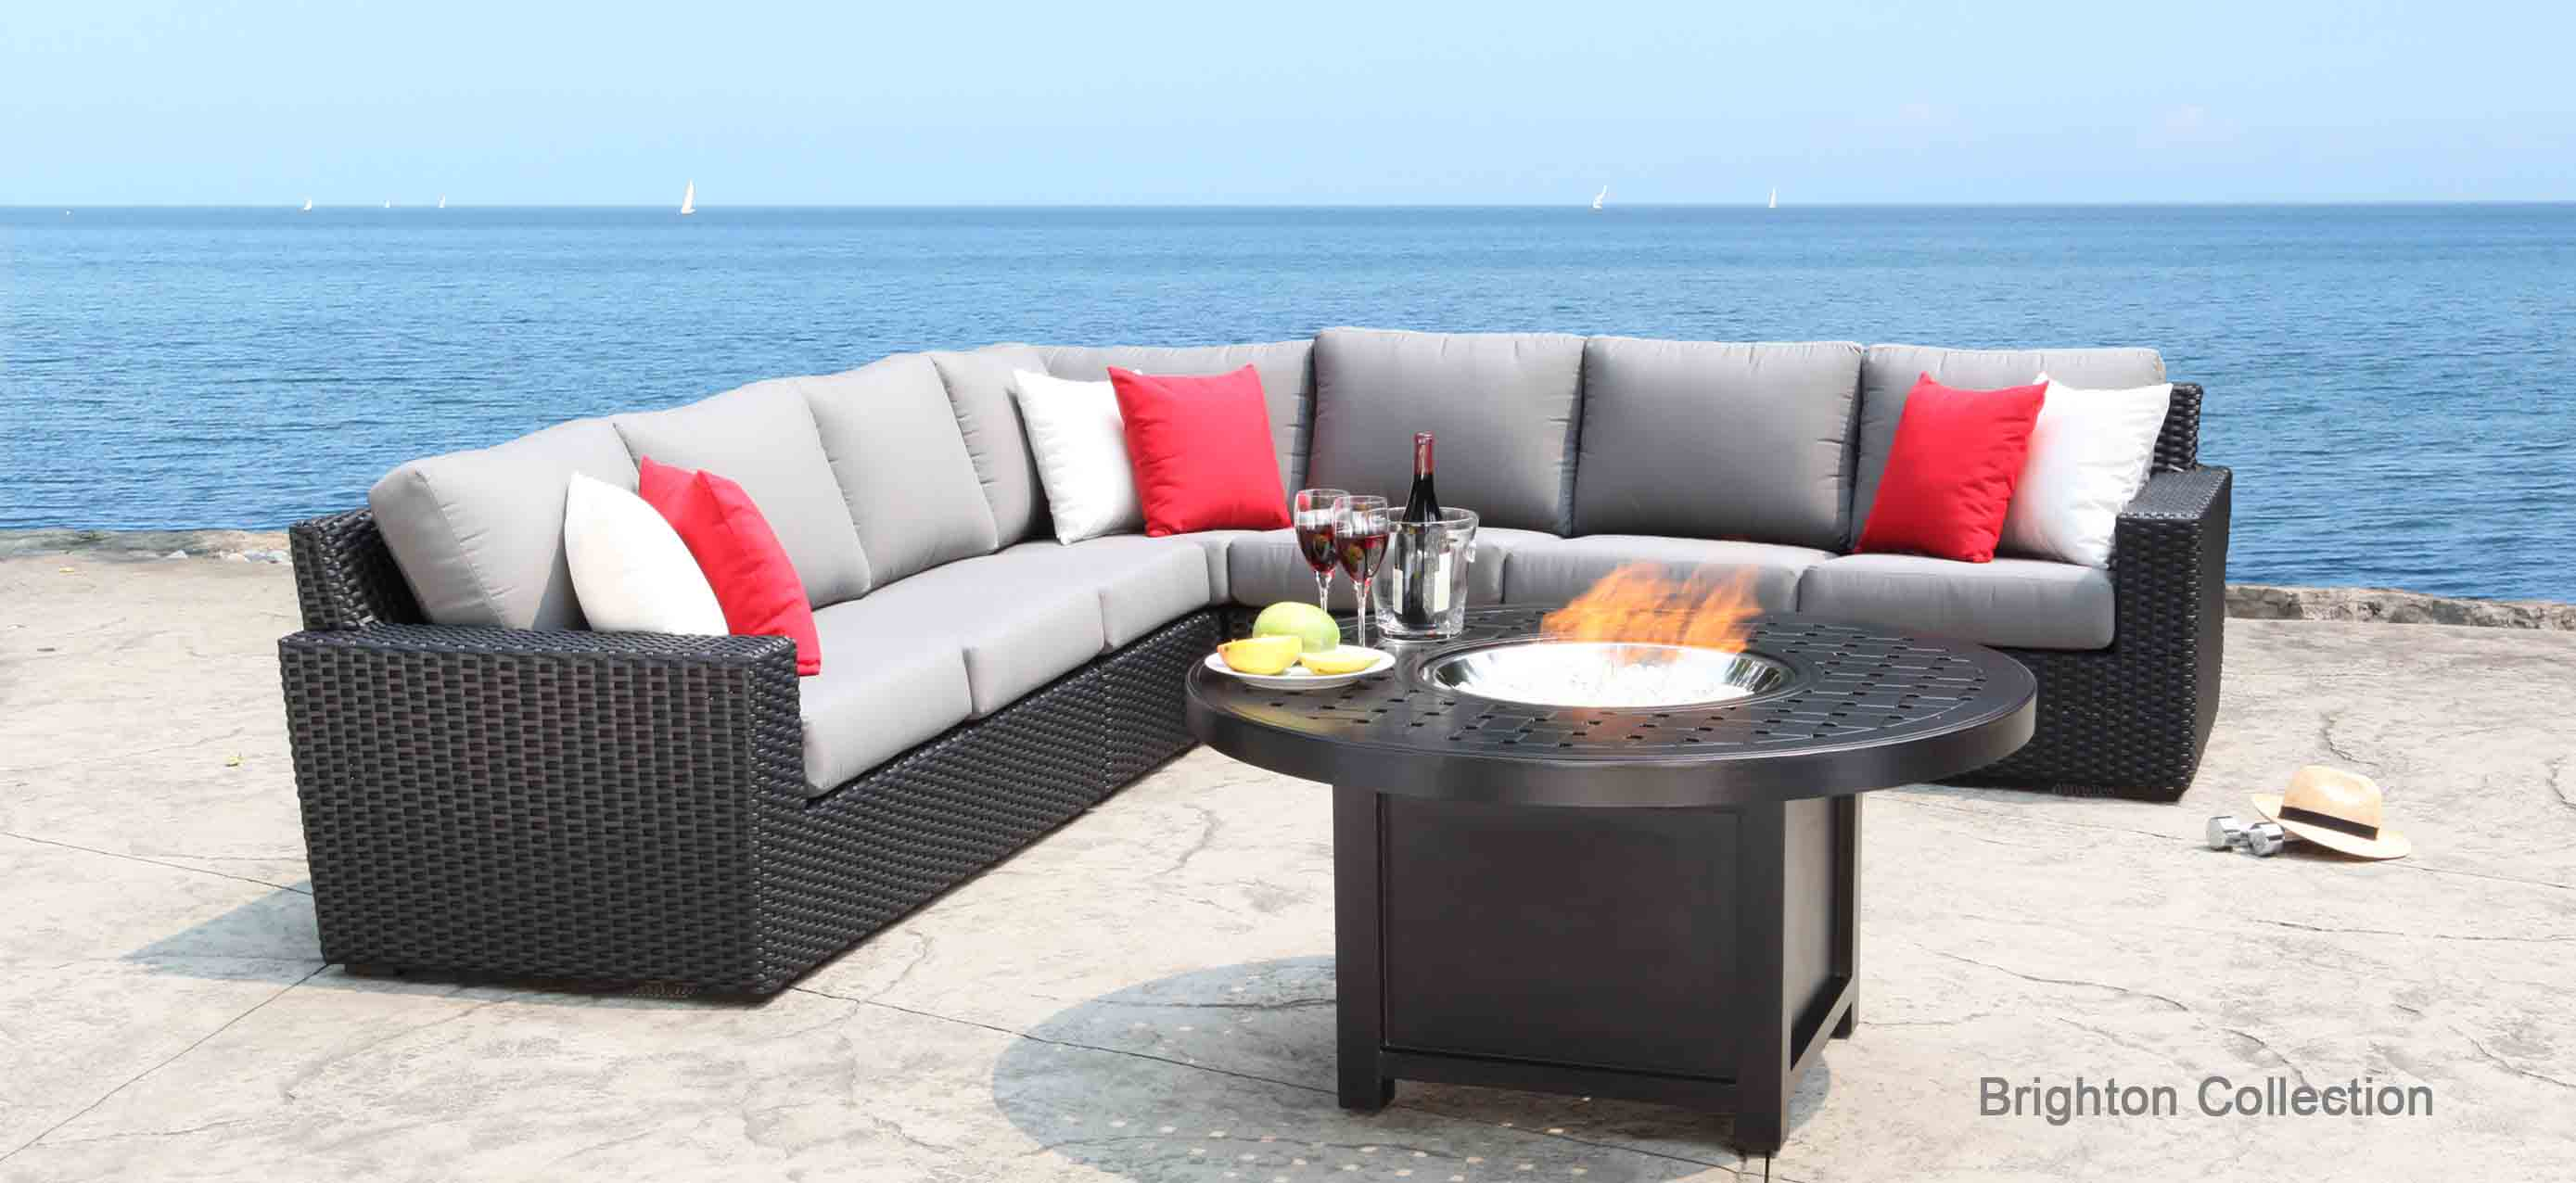 furniture target plastic table kmart dining small patio outdoor sets with umbrella hole hardware chairs umbrellas wrought iron bistro side round end glass mirrored black ikea play